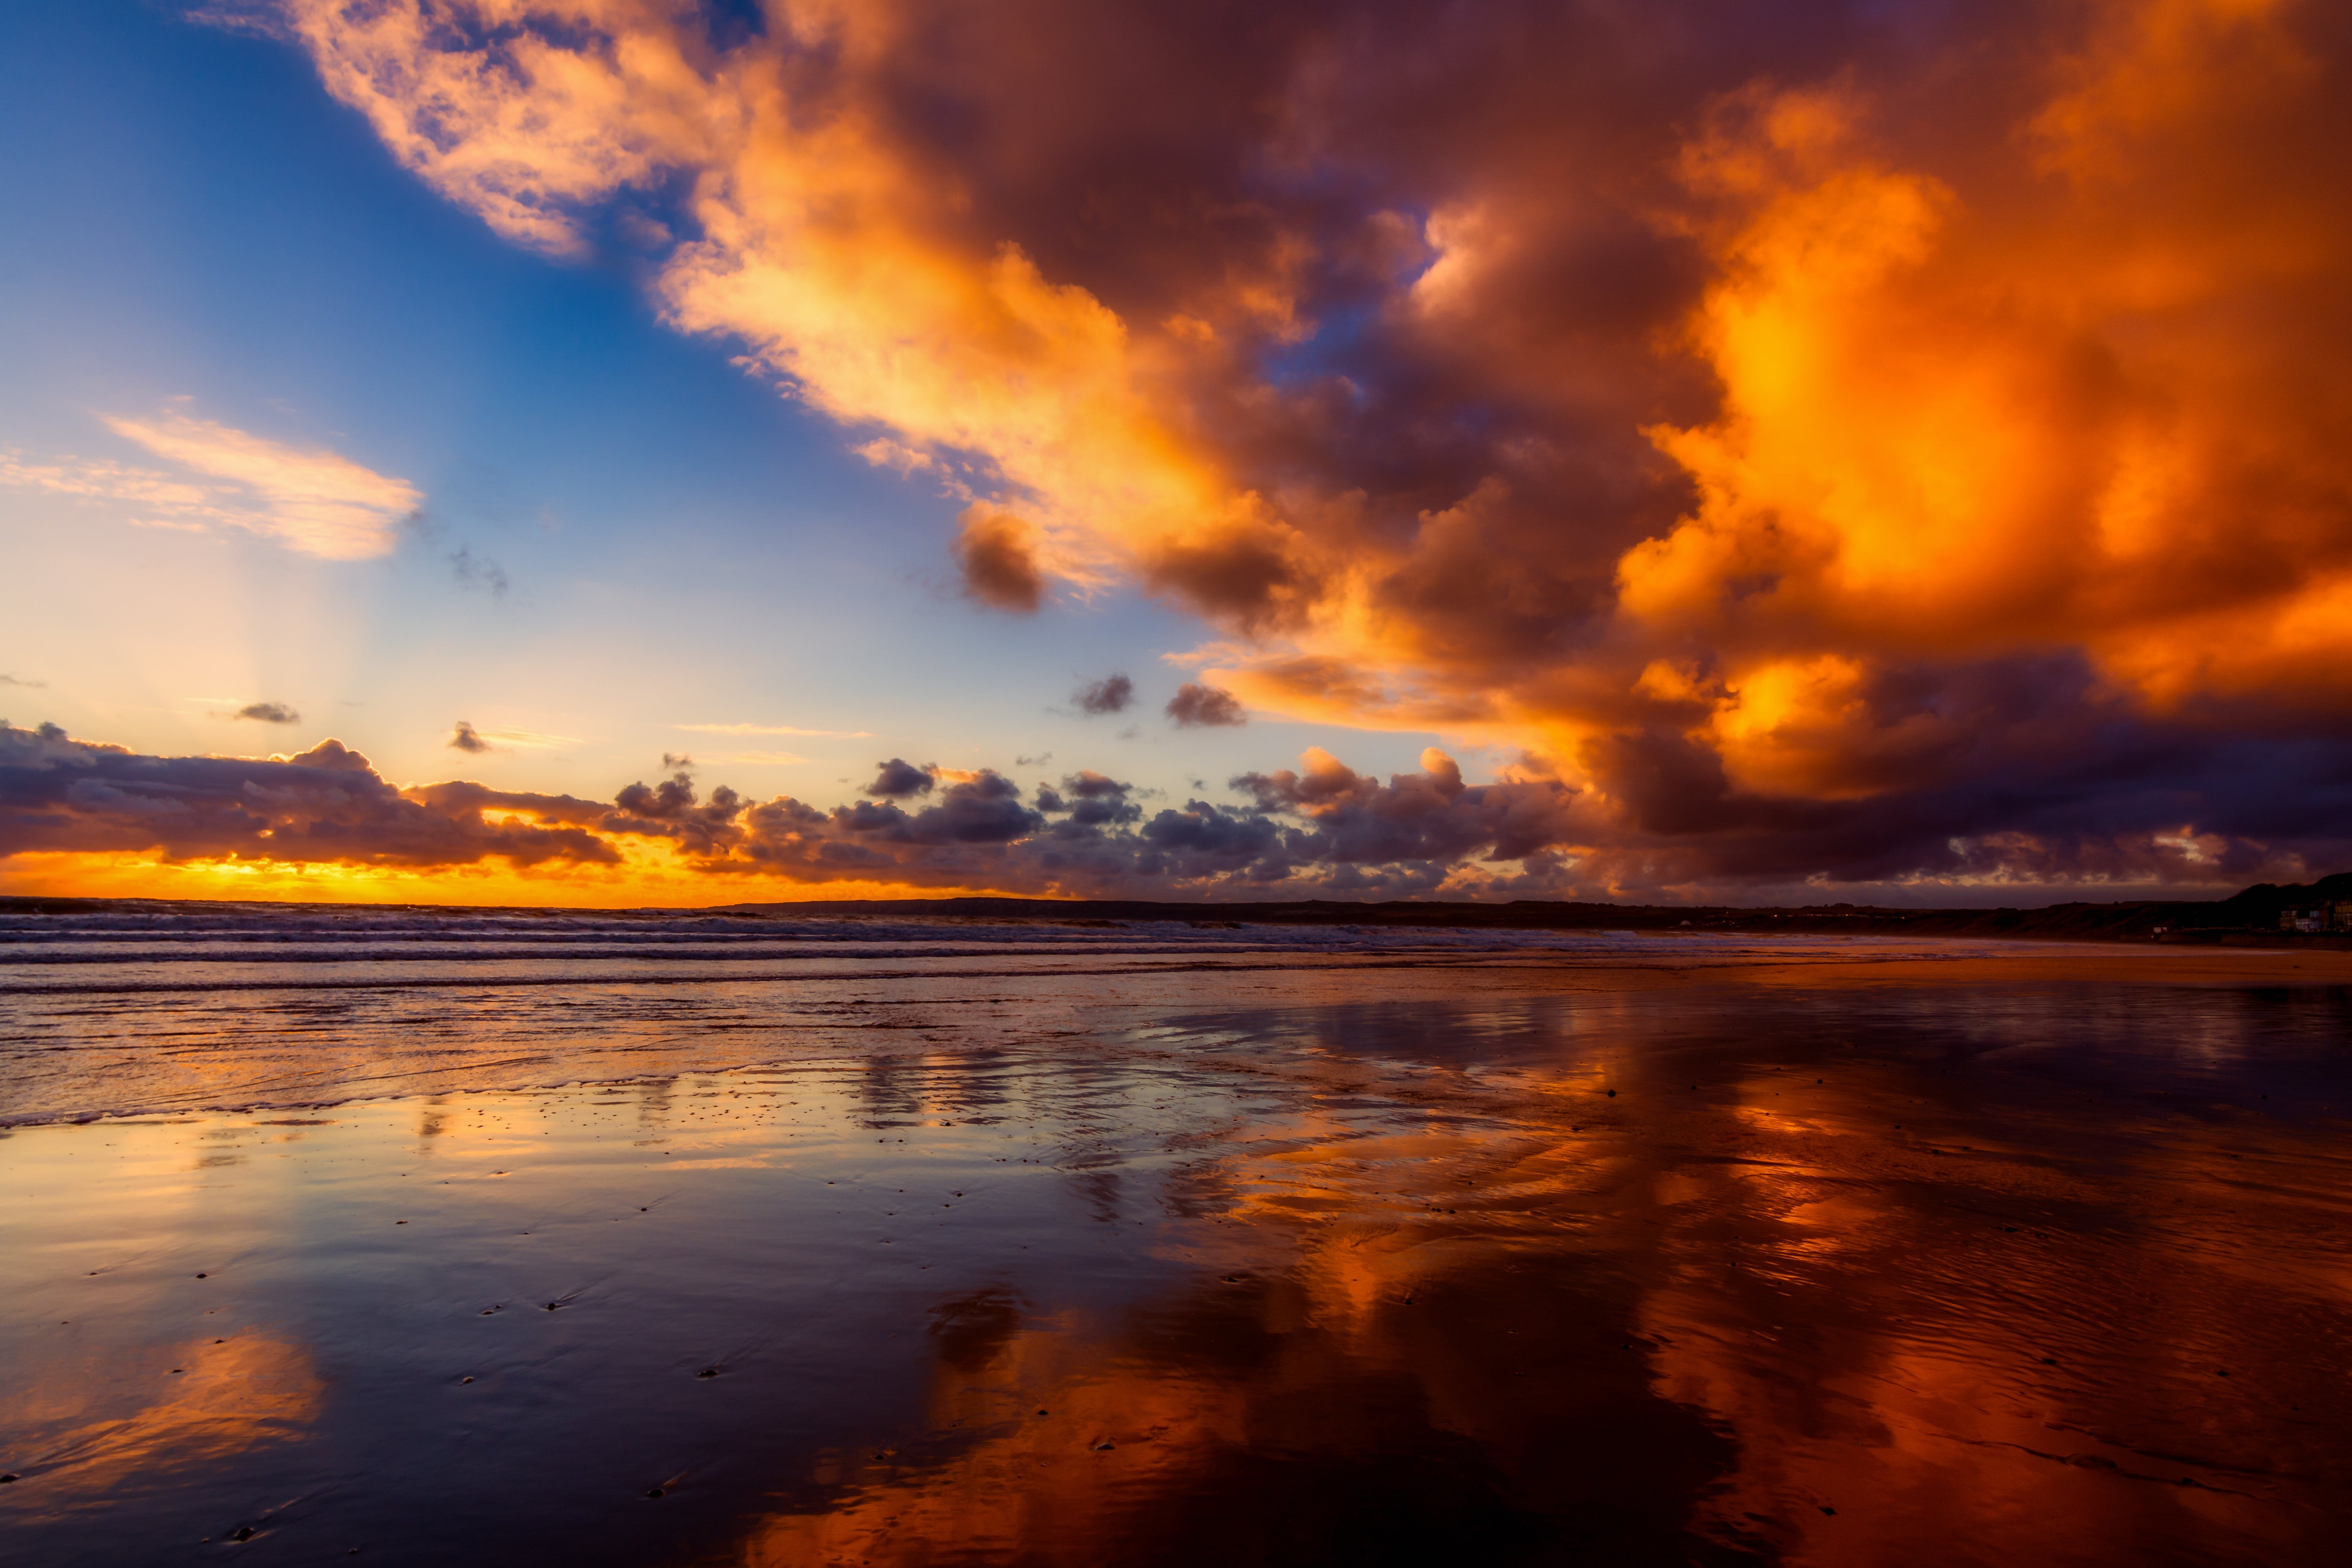 Orange Clouds Reflected on Body of Water